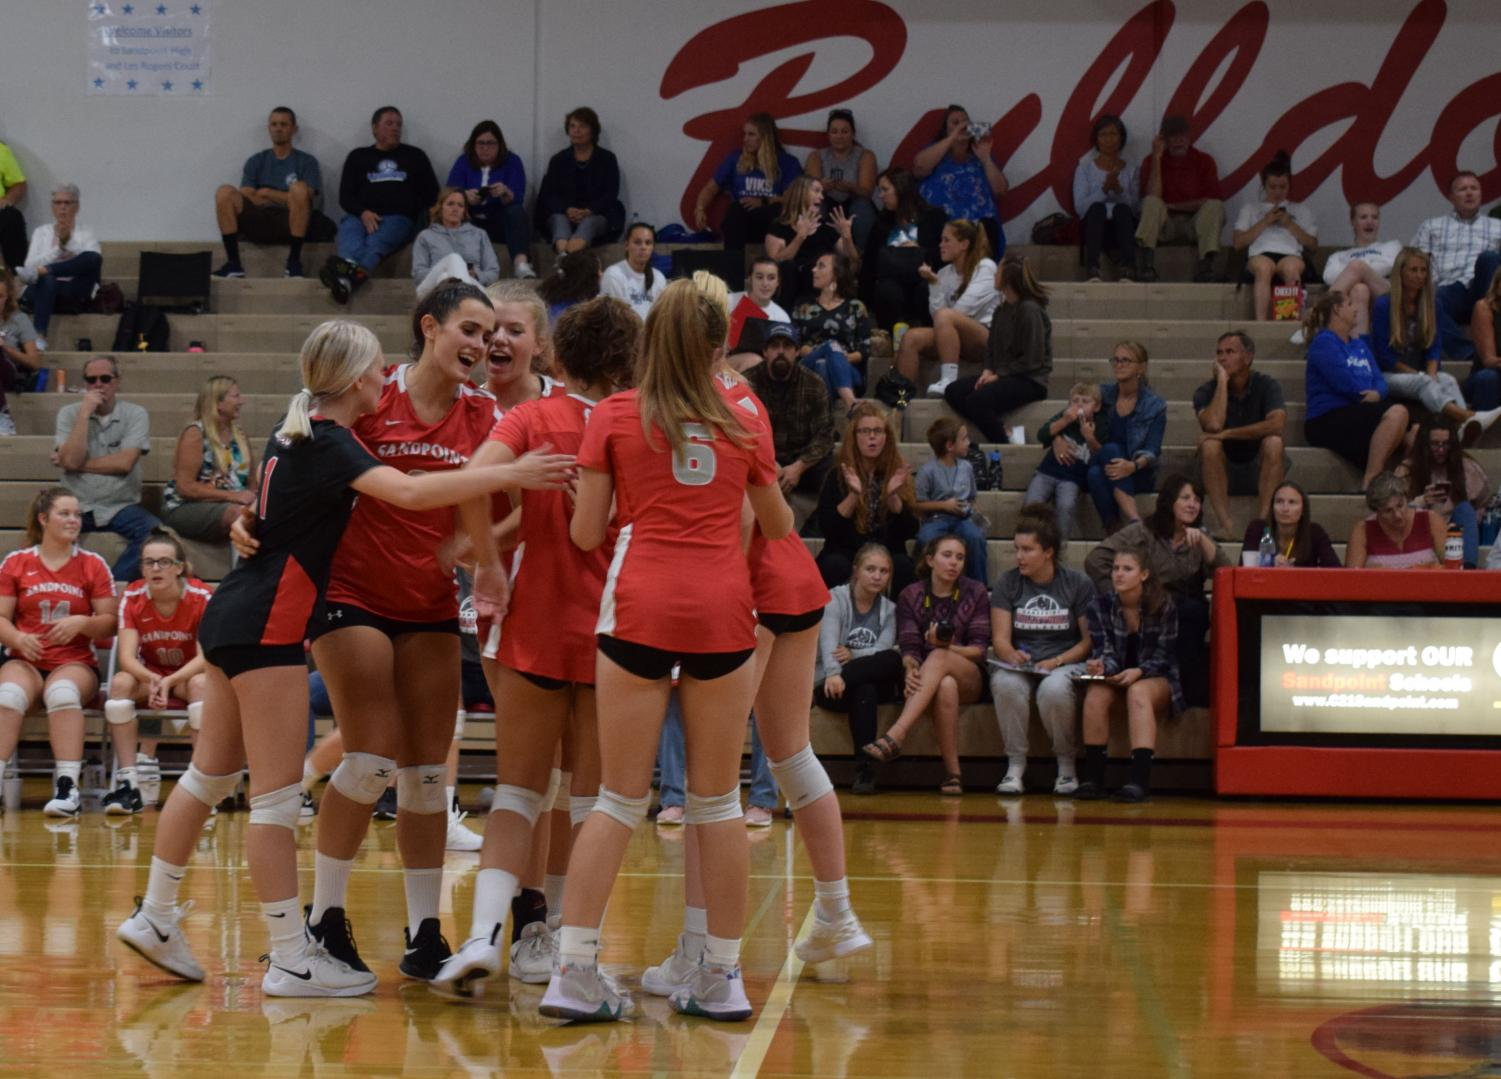 Varsity volleyball team celebrates a scored point against Lake City earlier this season.